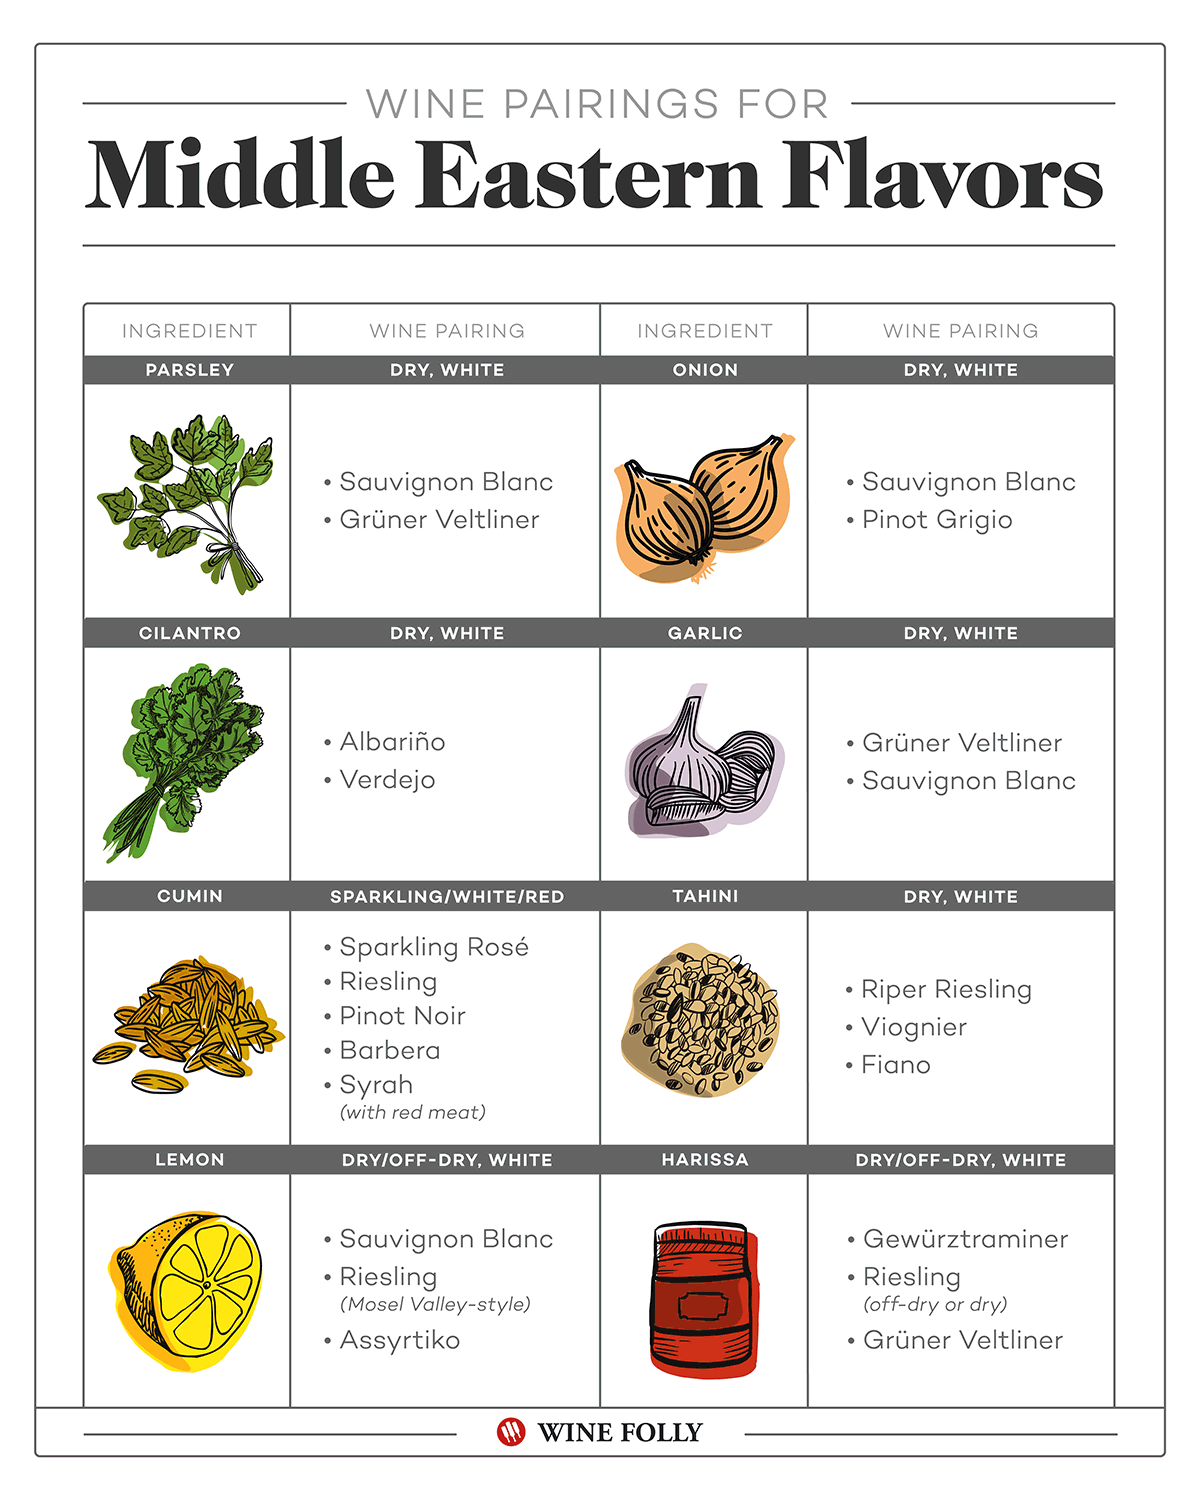 wine-pairing-middle-eastern-food-ingredient-list-hummus-winefolly